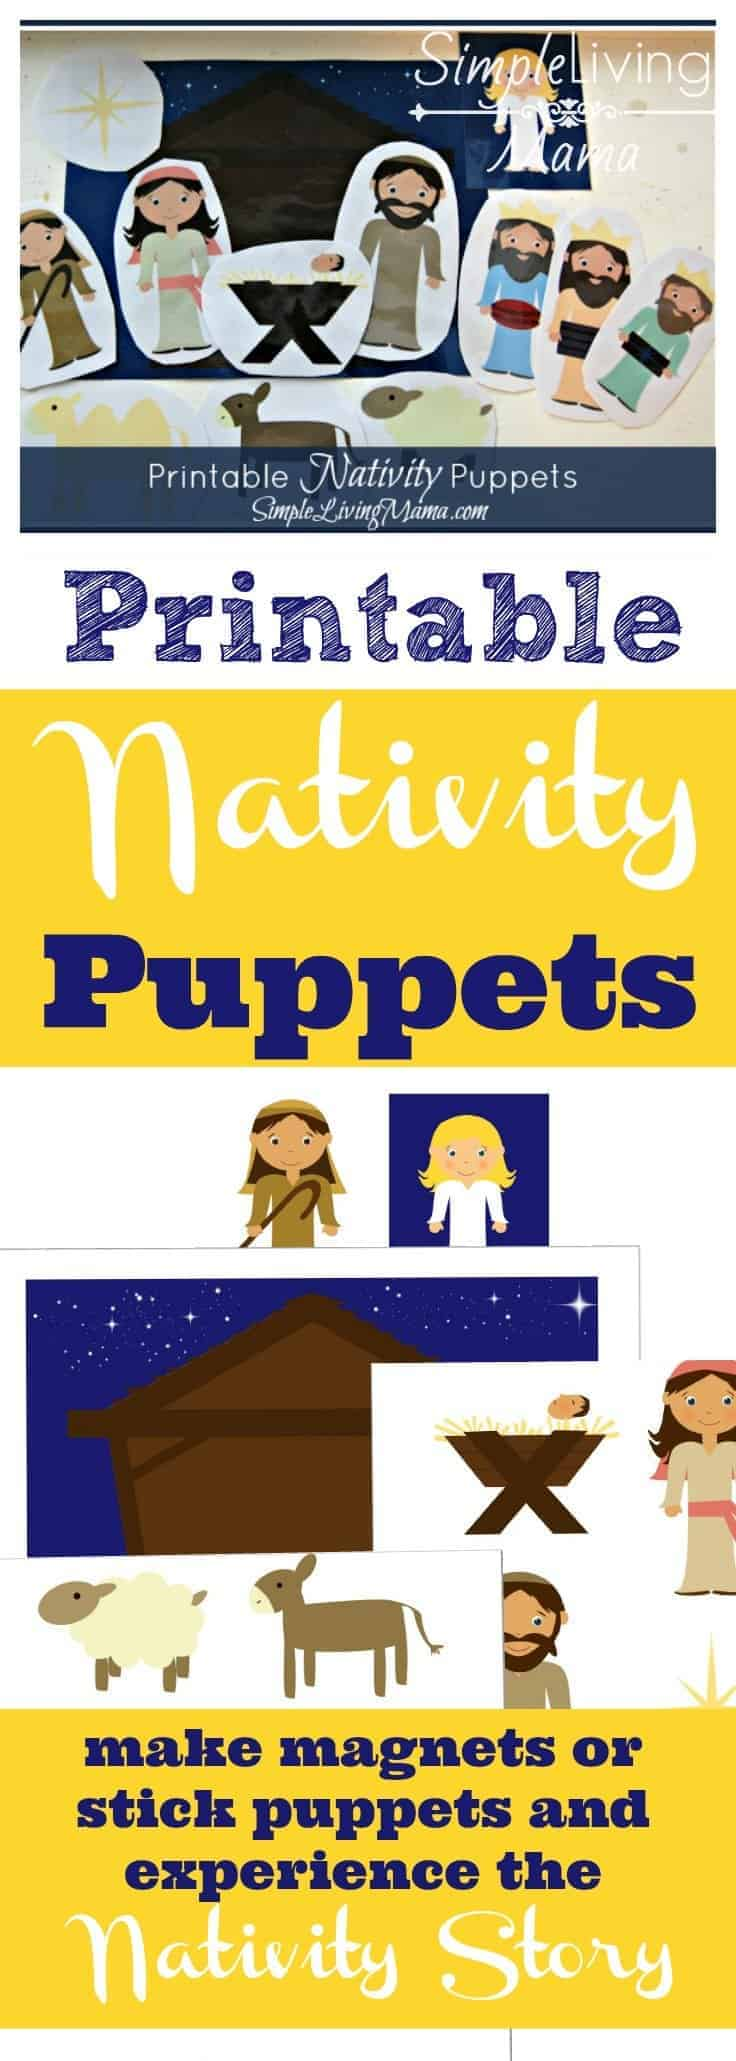 Printable nativity puppets. Just print, laminate, and cut. Then get ready to let your kids reenact the true Christmas story!